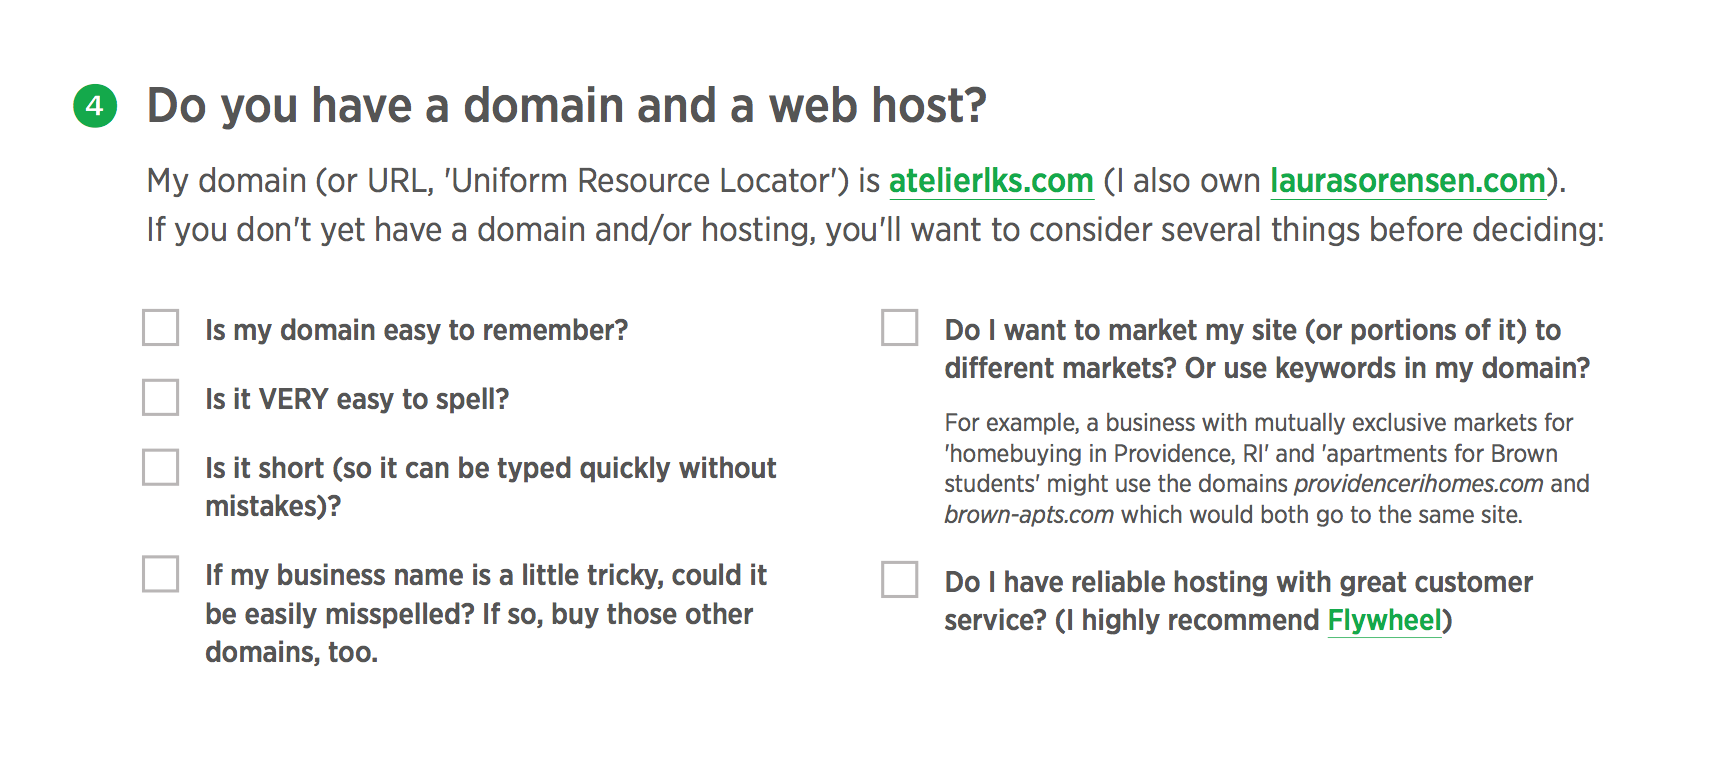 Do you have a domain name and a web host?